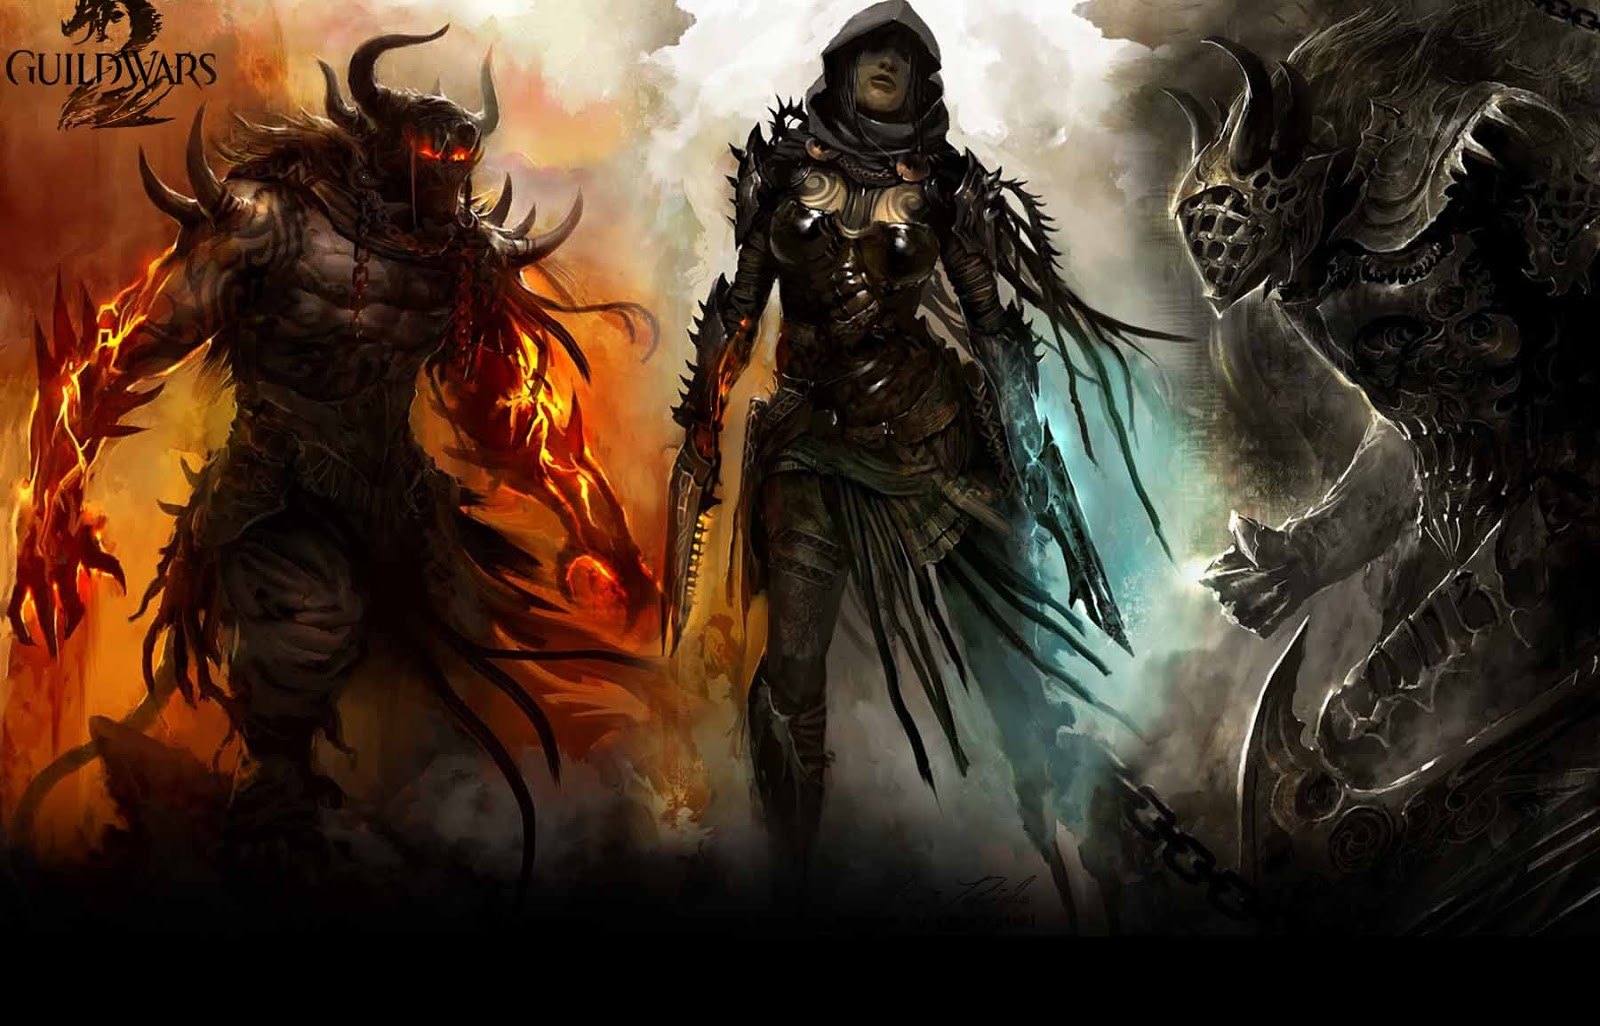 Amazing Guild Wars Pictures & Backgrounds